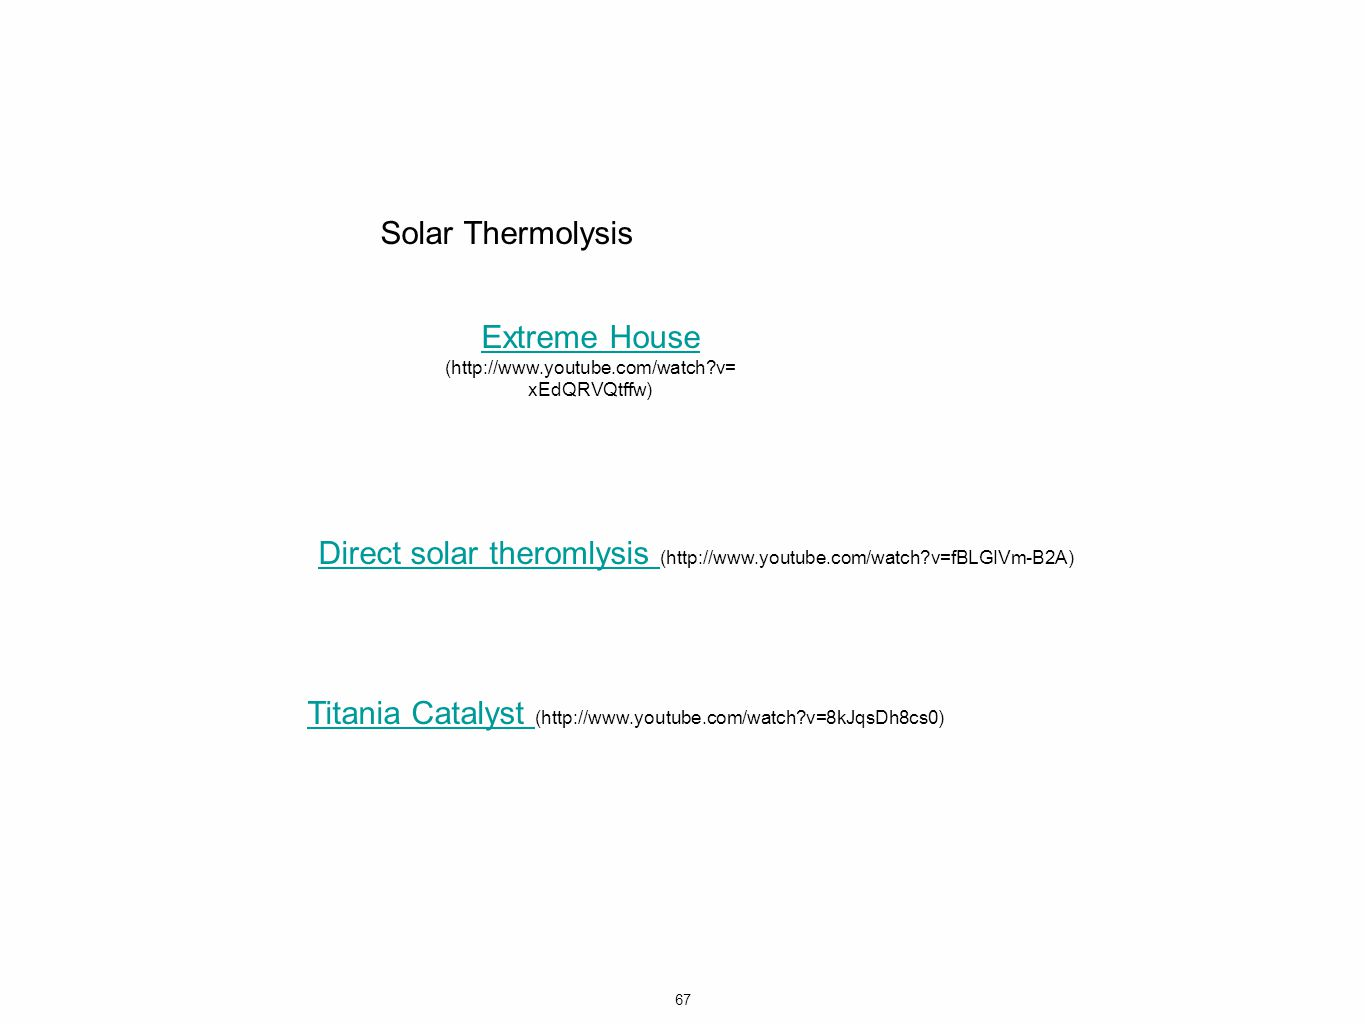 67 Solar Thermolysis Extreme House Extreme House (http://www.youtube.com/watch v= xEdQRVQtffw) Direct solar theromlysis Direct solar theromlysis (http://www.youtube.com/watch v=fBLGIVm-B2A) Titania Catalyst Titania Catalyst (http://www.youtube.com/watch v=8kJqsDh8cs0)